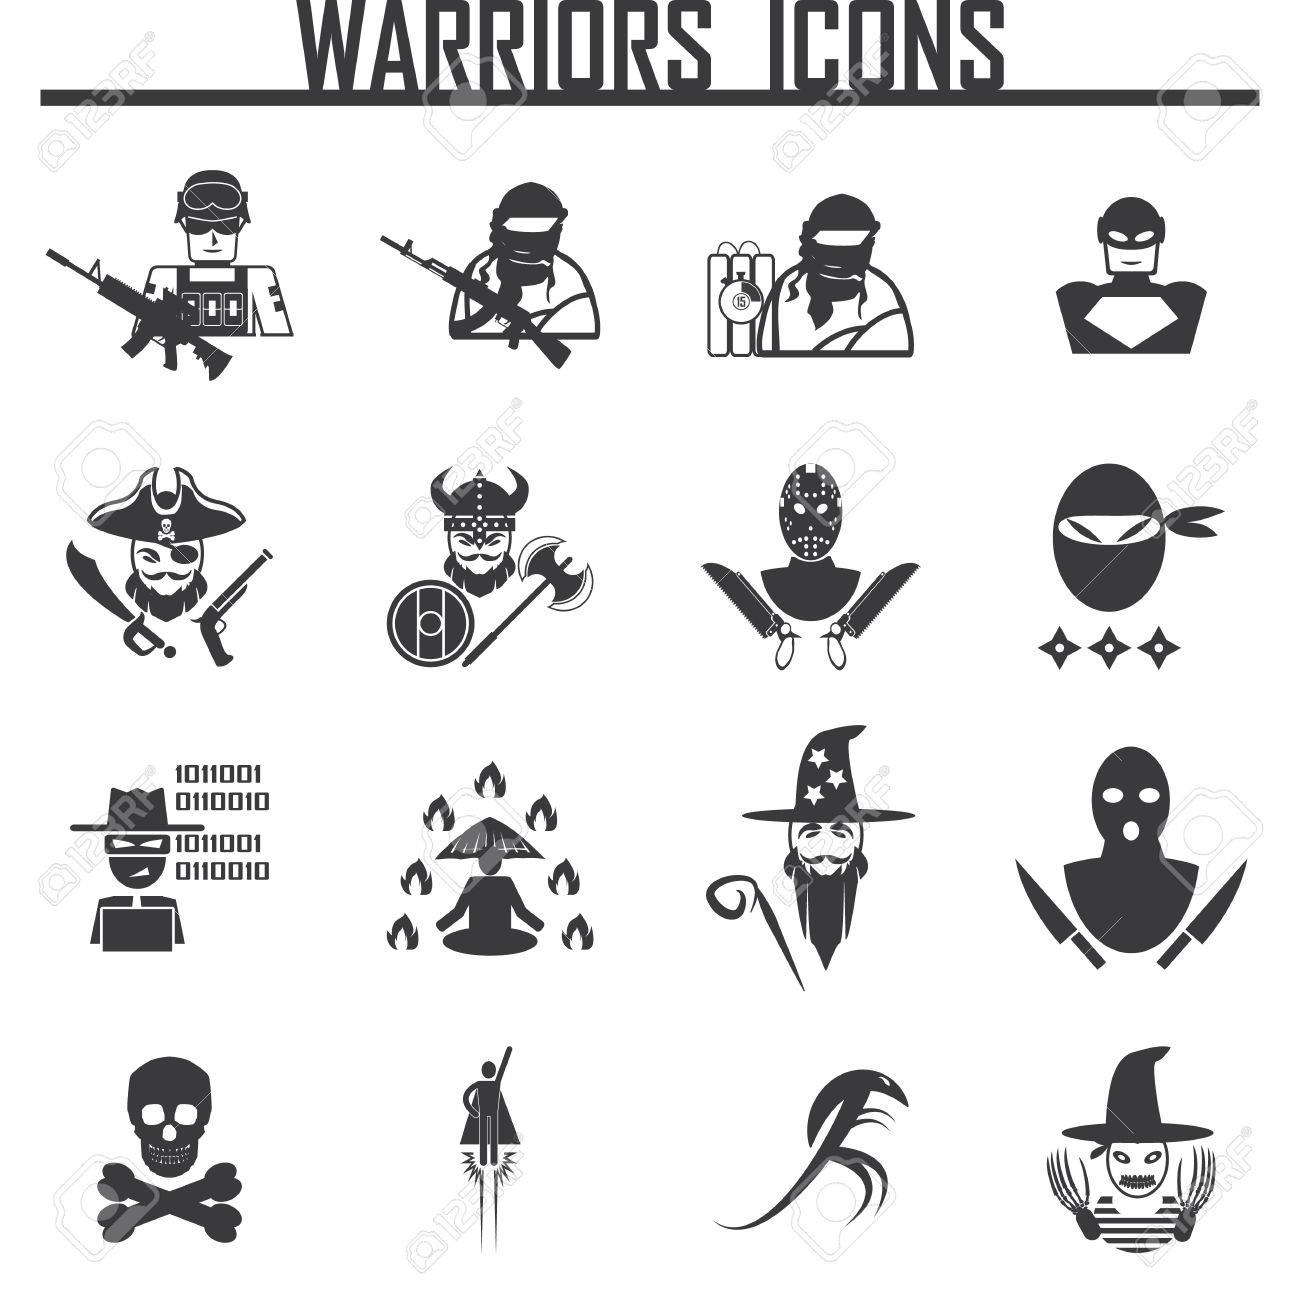 ancient warrior character for good alliance icon symbol sign royalty